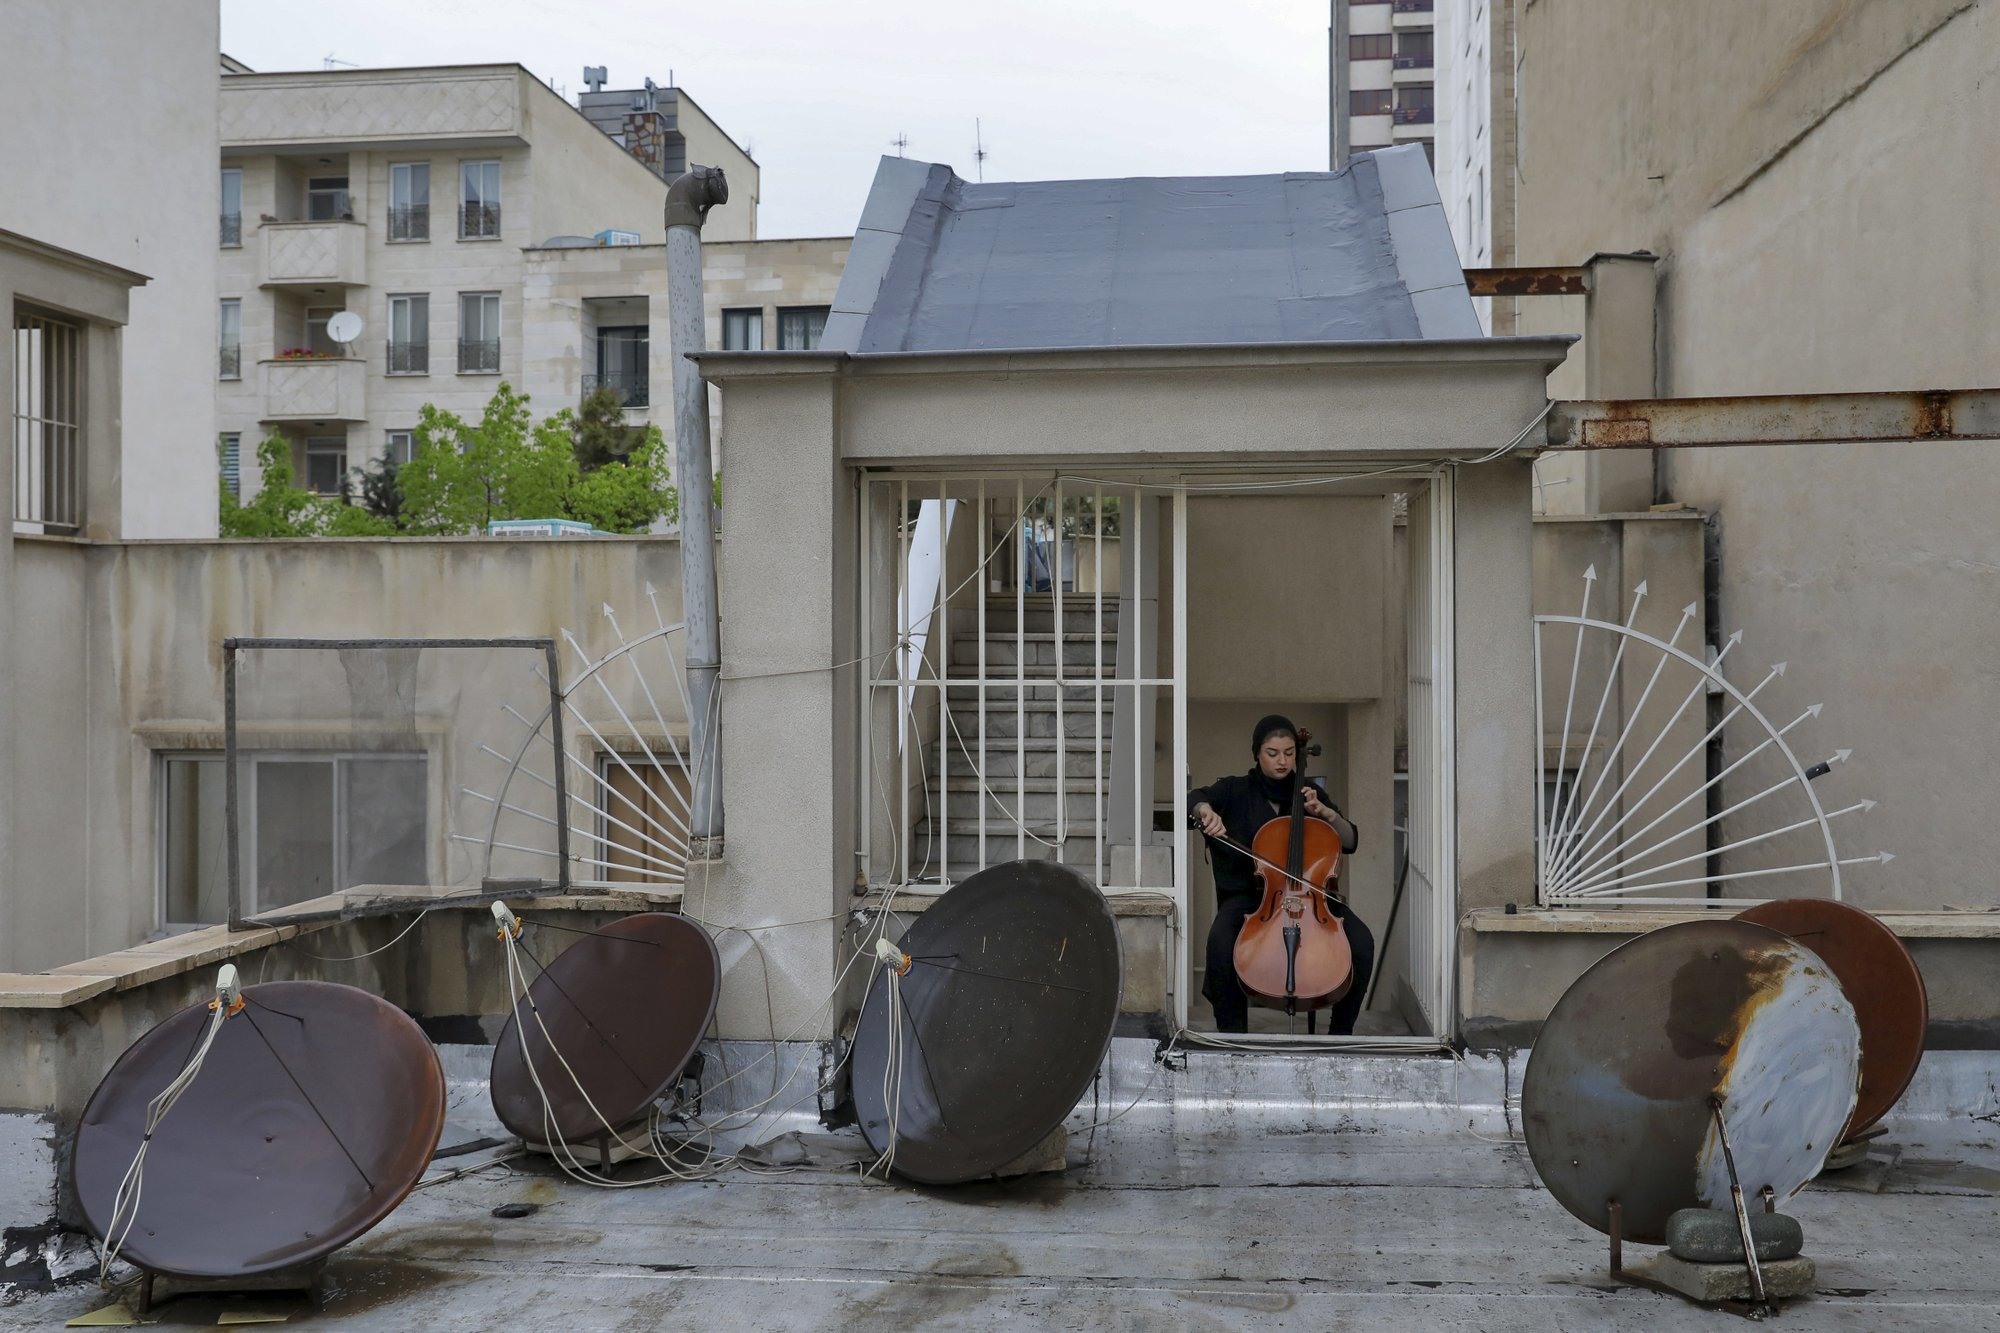 Yasamin Koozehgar, 22, plays cello on the roof of her home during mandatory self-isolation due to the new coronavirus disease outbreak, in Tehran Iran. (AP Photo/Ebrahim Noroozi)